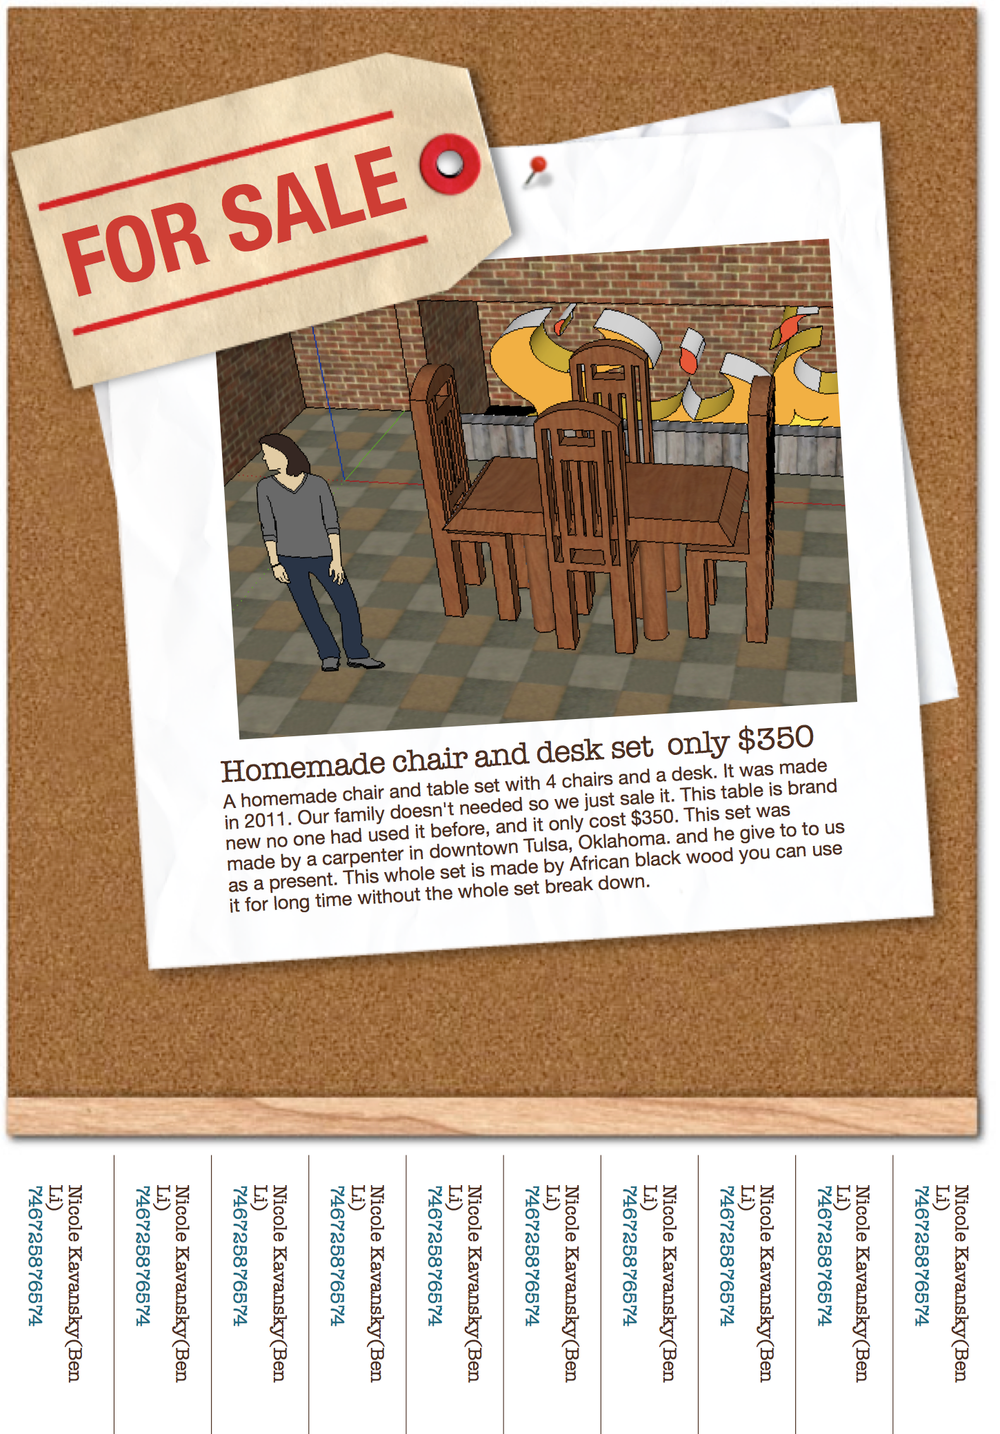 Advert for a table & chair set, designed in Google SketchUp & Apple Pages.